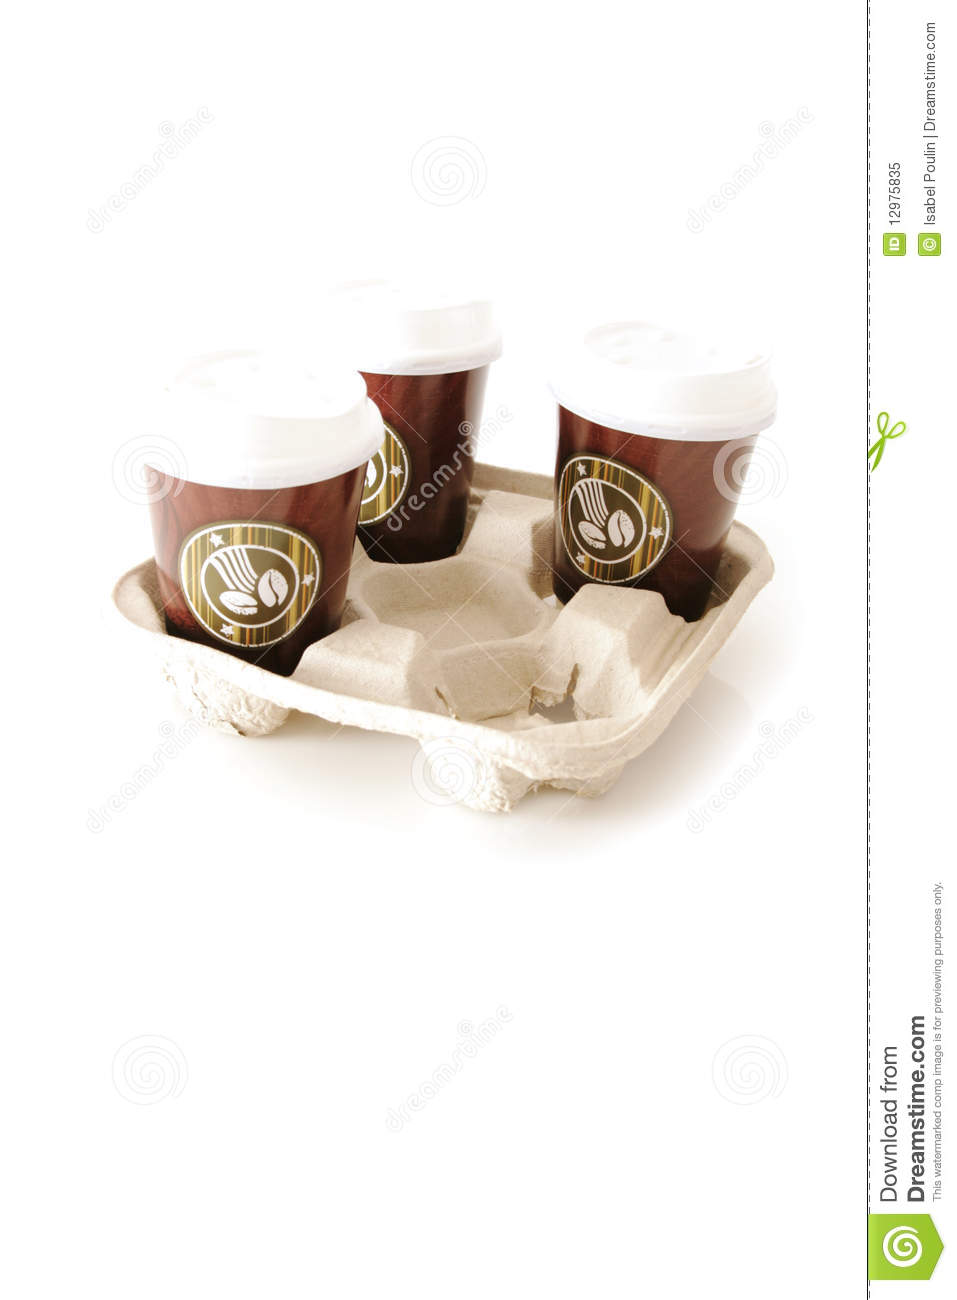 Coffee to go royalty free stock photo image 12975835 for Coffee to go